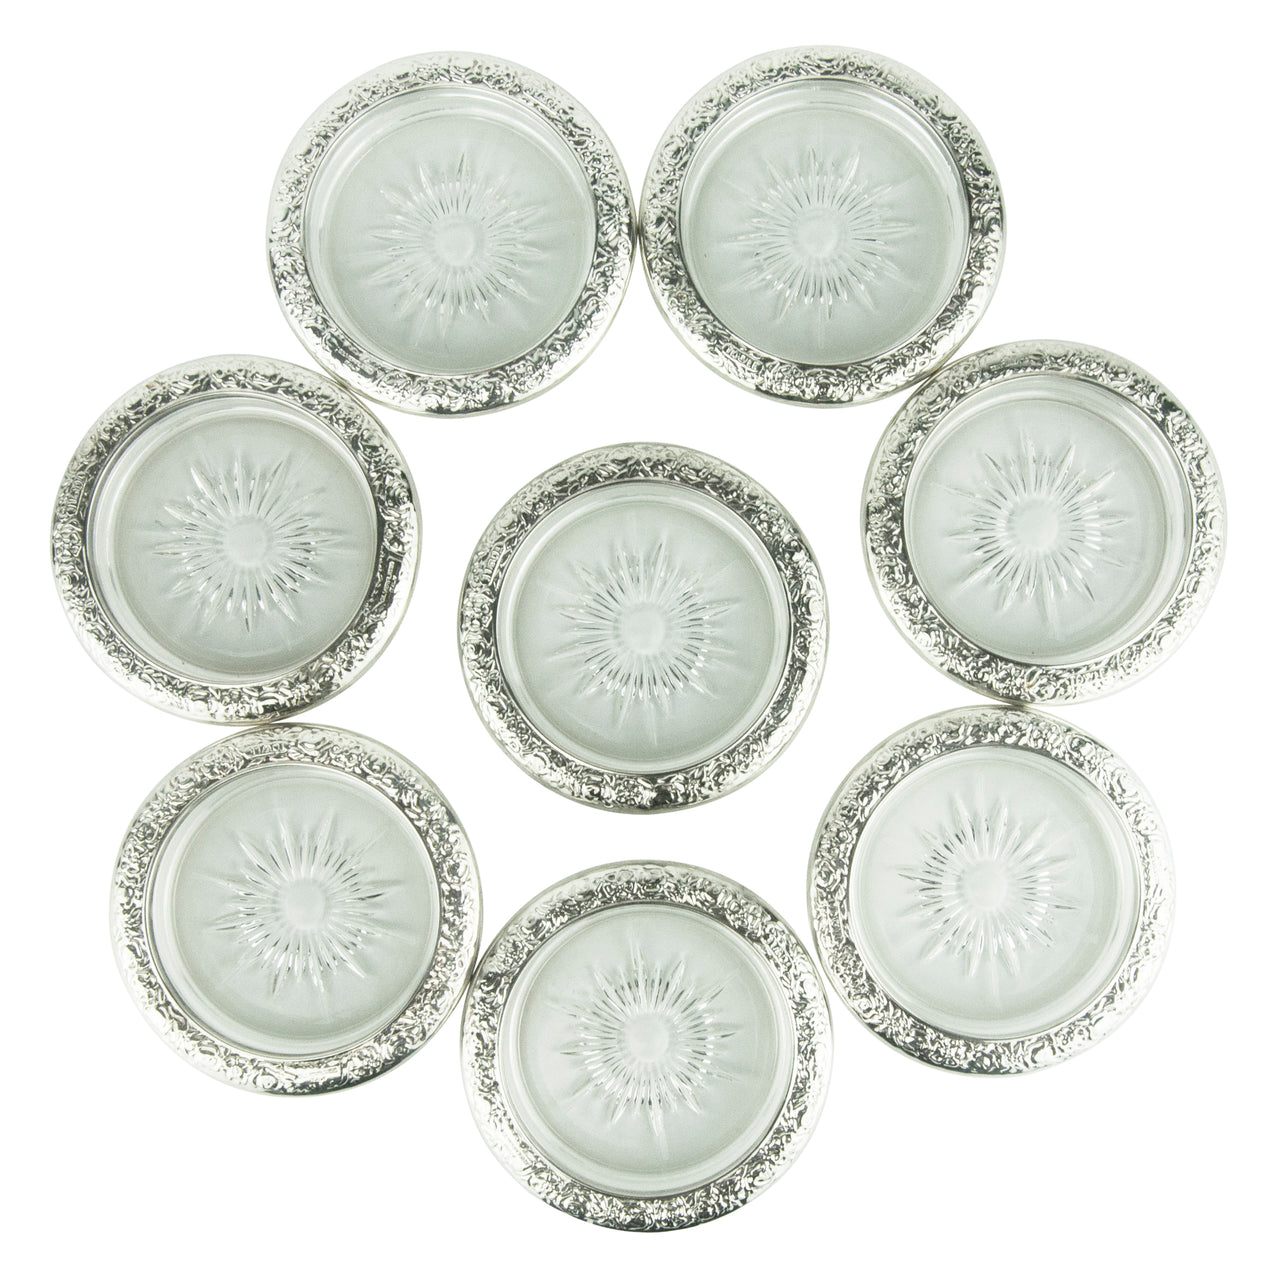 Vintage Towle Silver Plate Edge Glass Coasters | The Hour Shop